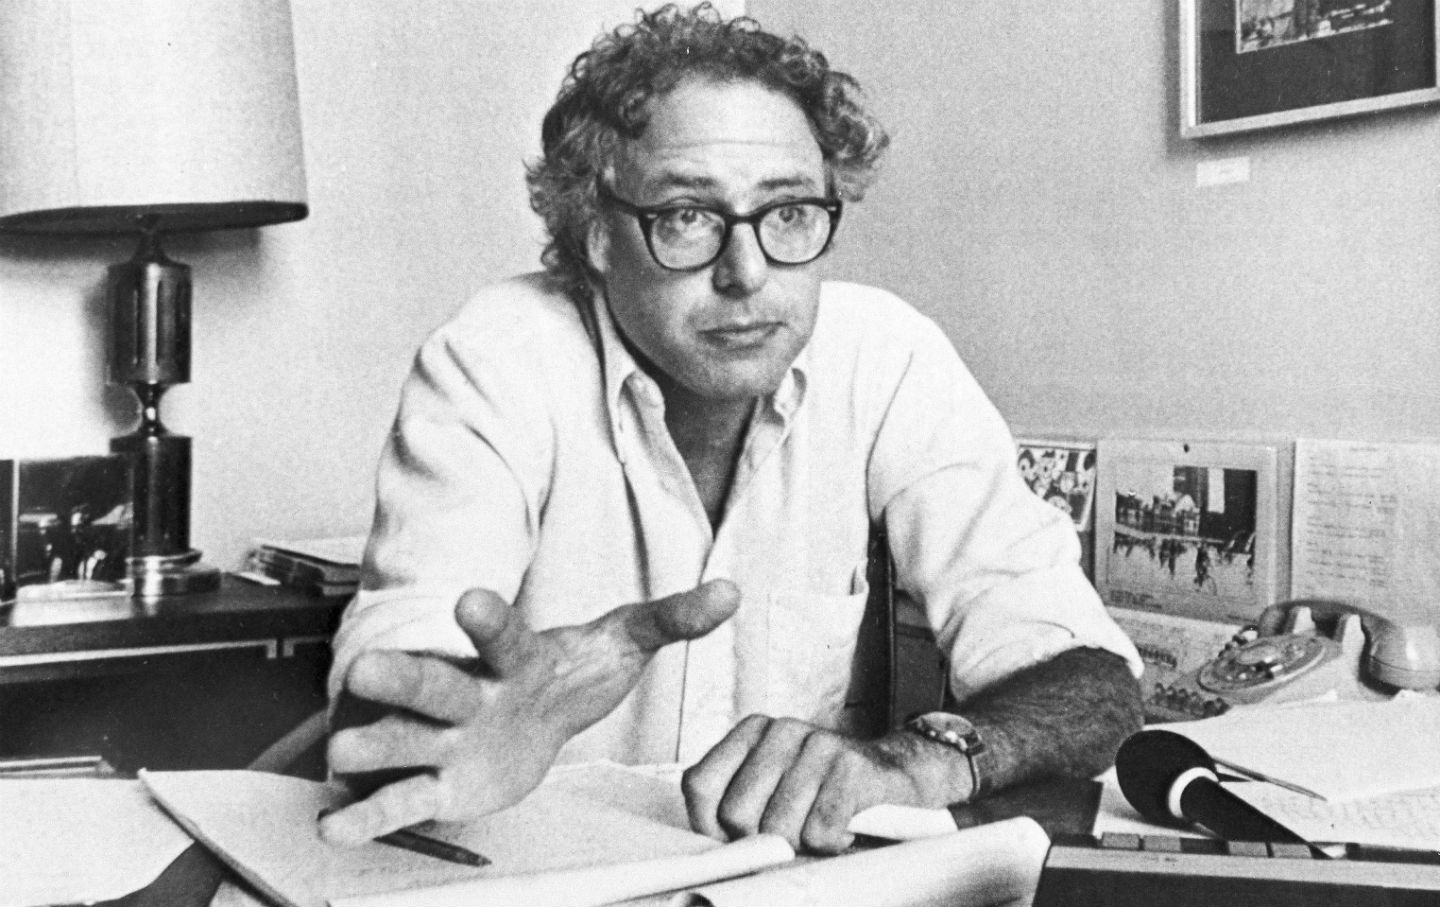 Bernie Sanders as Mayor of Burlington, Vermont